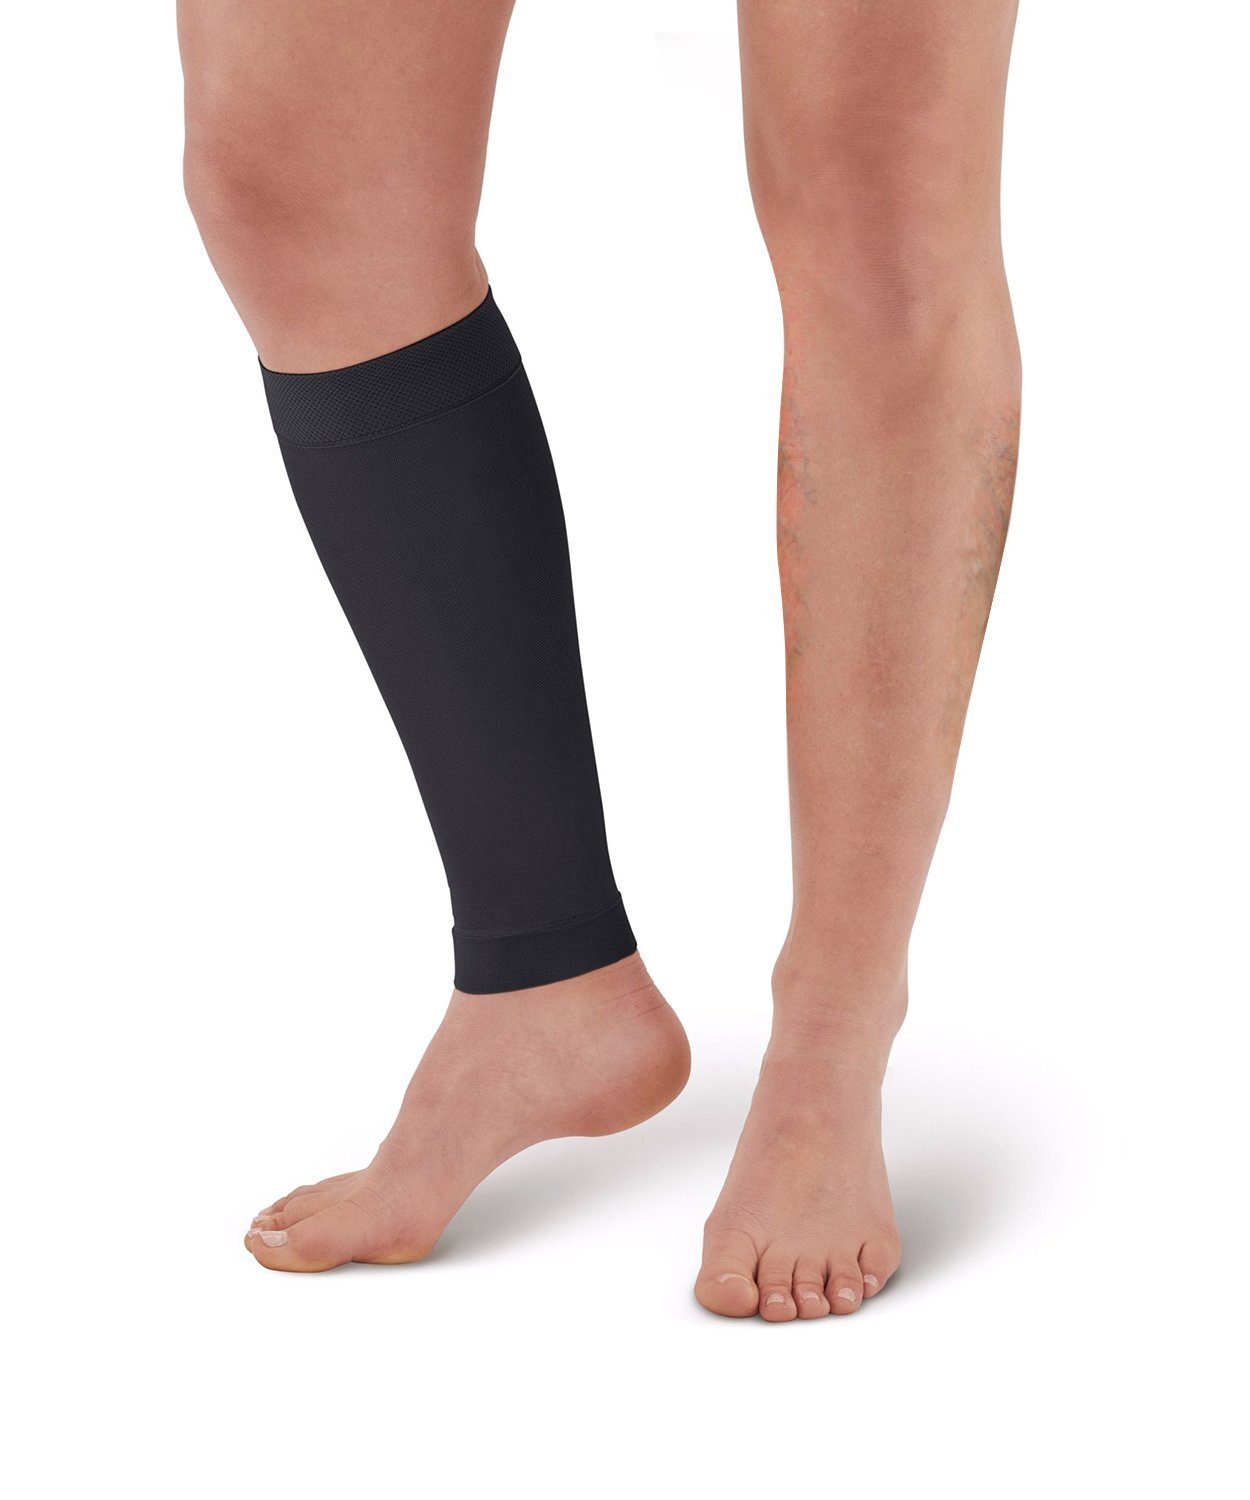 SWOLF Medical Calf Compression Sleeve, Women Men 20-30 mmHg Footless Compression Socks for Shin Splint, Varicose Veins